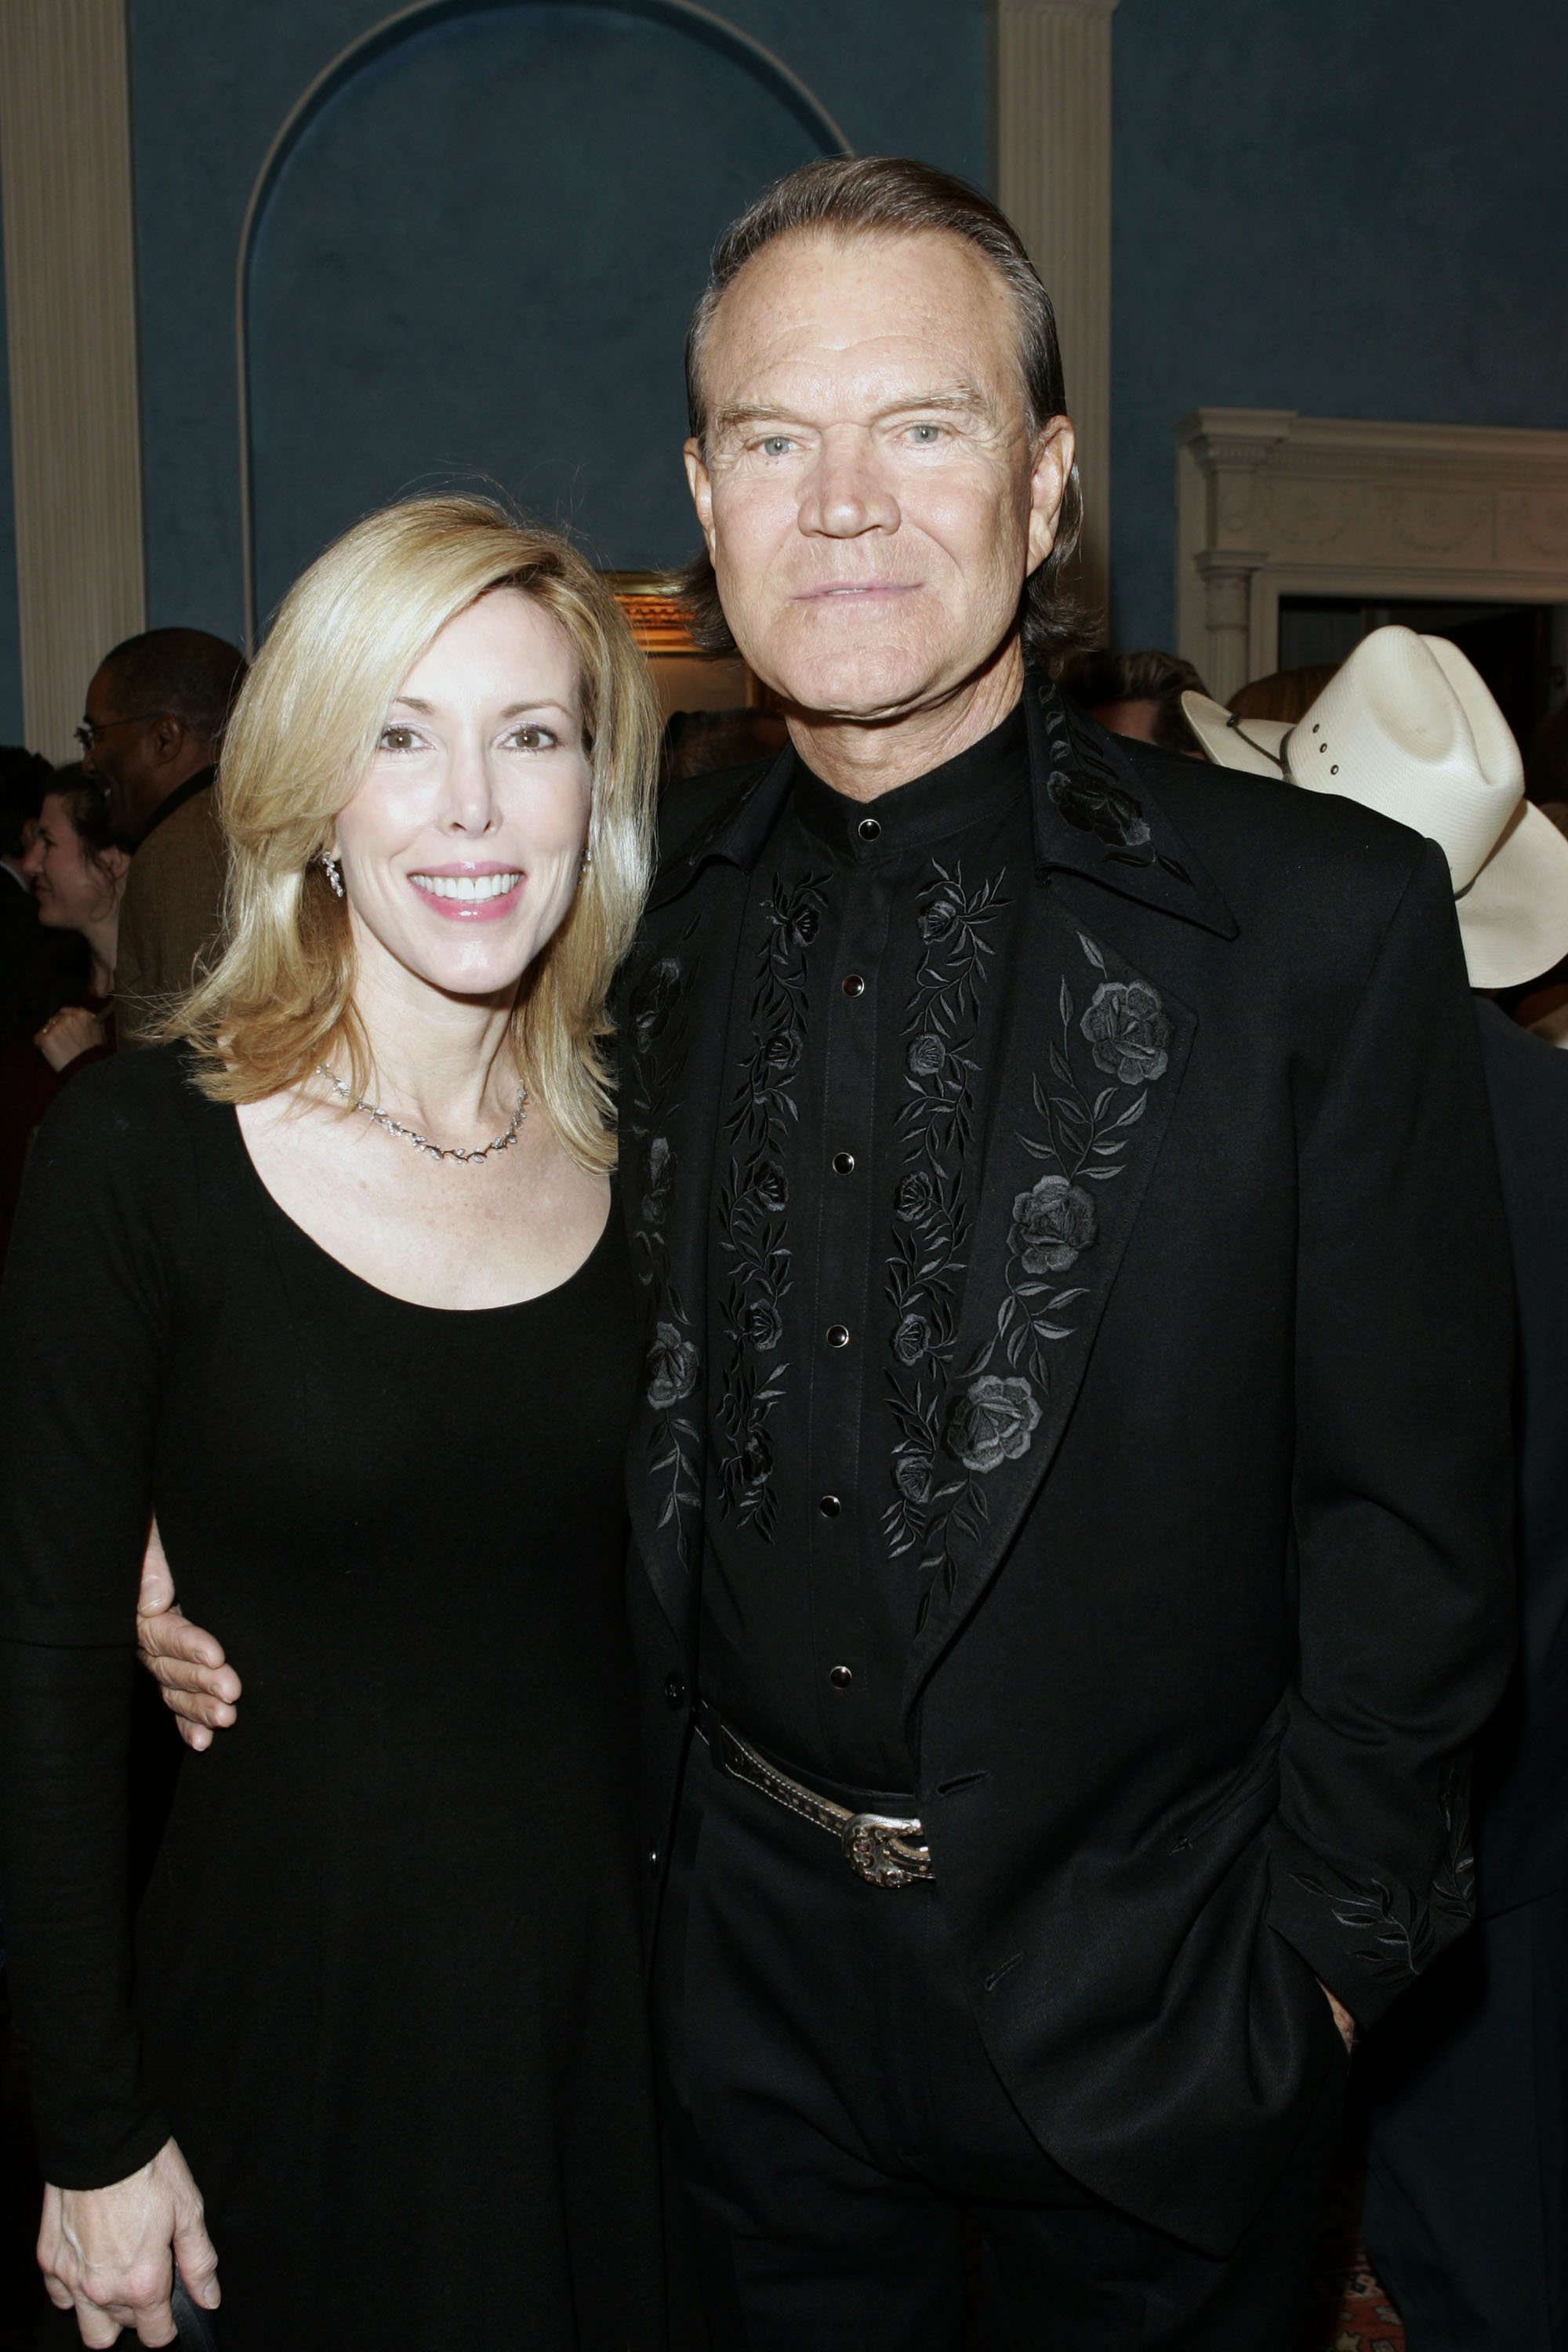 The late singer Glen Campbell and his wife Kim Campbell | Photo: Getty Images